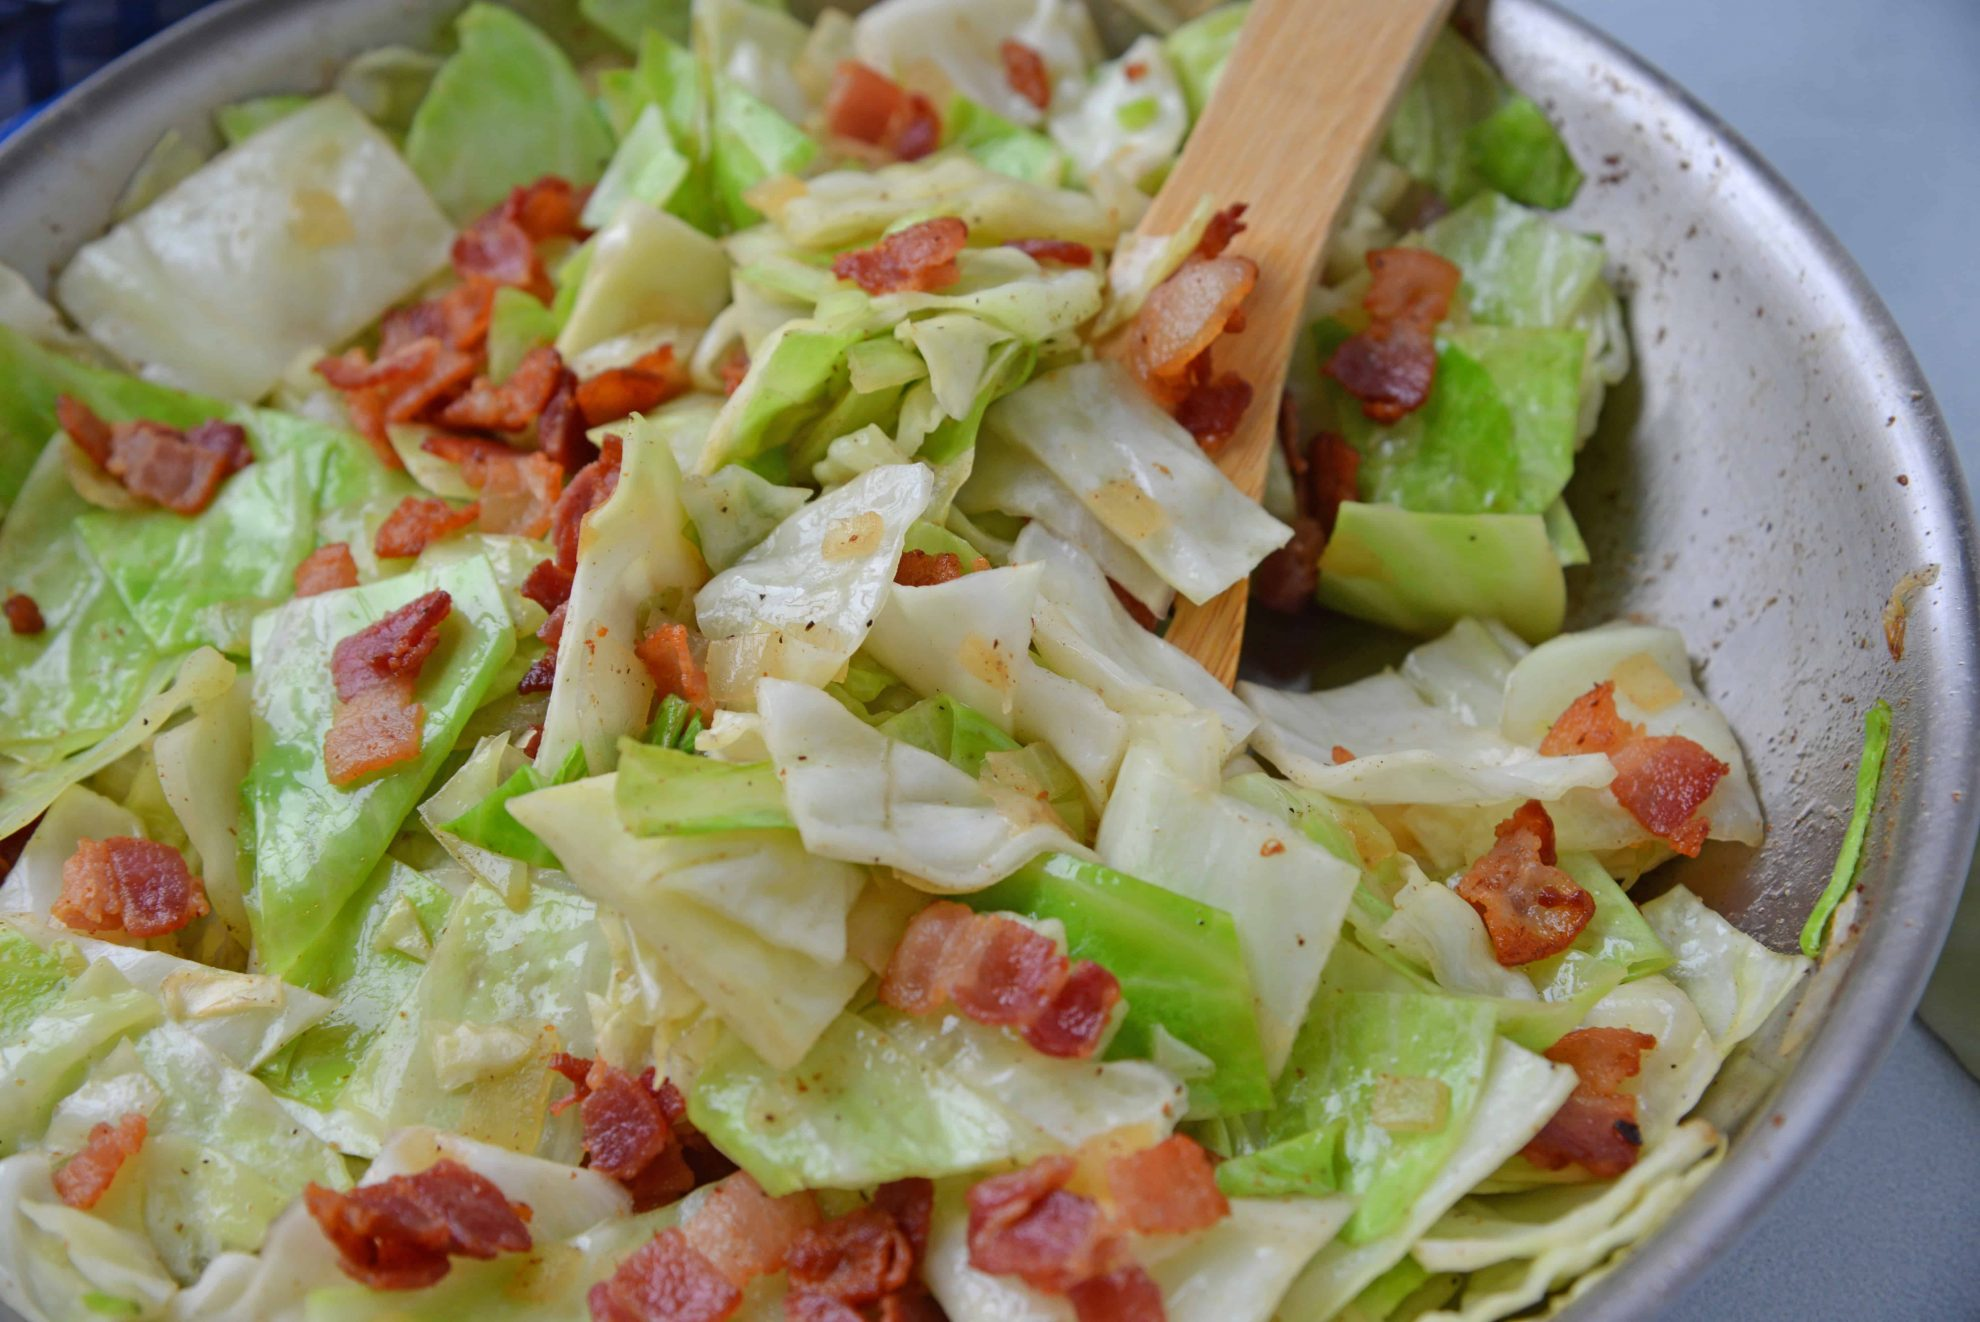 A close up of a bowl of salad, with Cabbage and Recipes